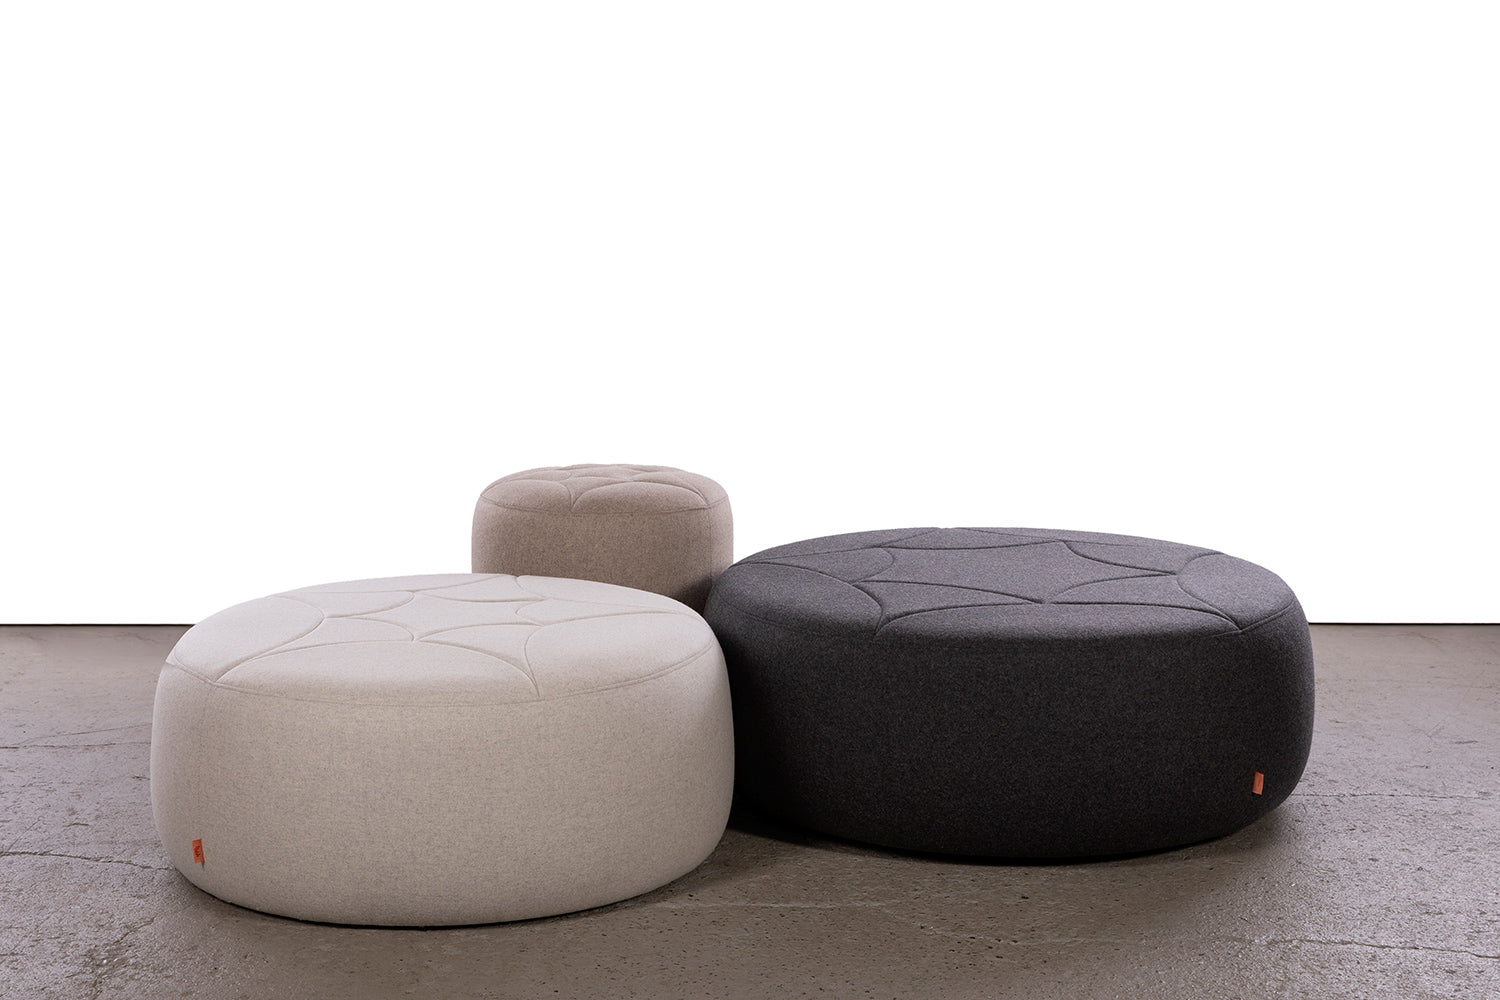 3's companee ottoman grouping, wool ottomans